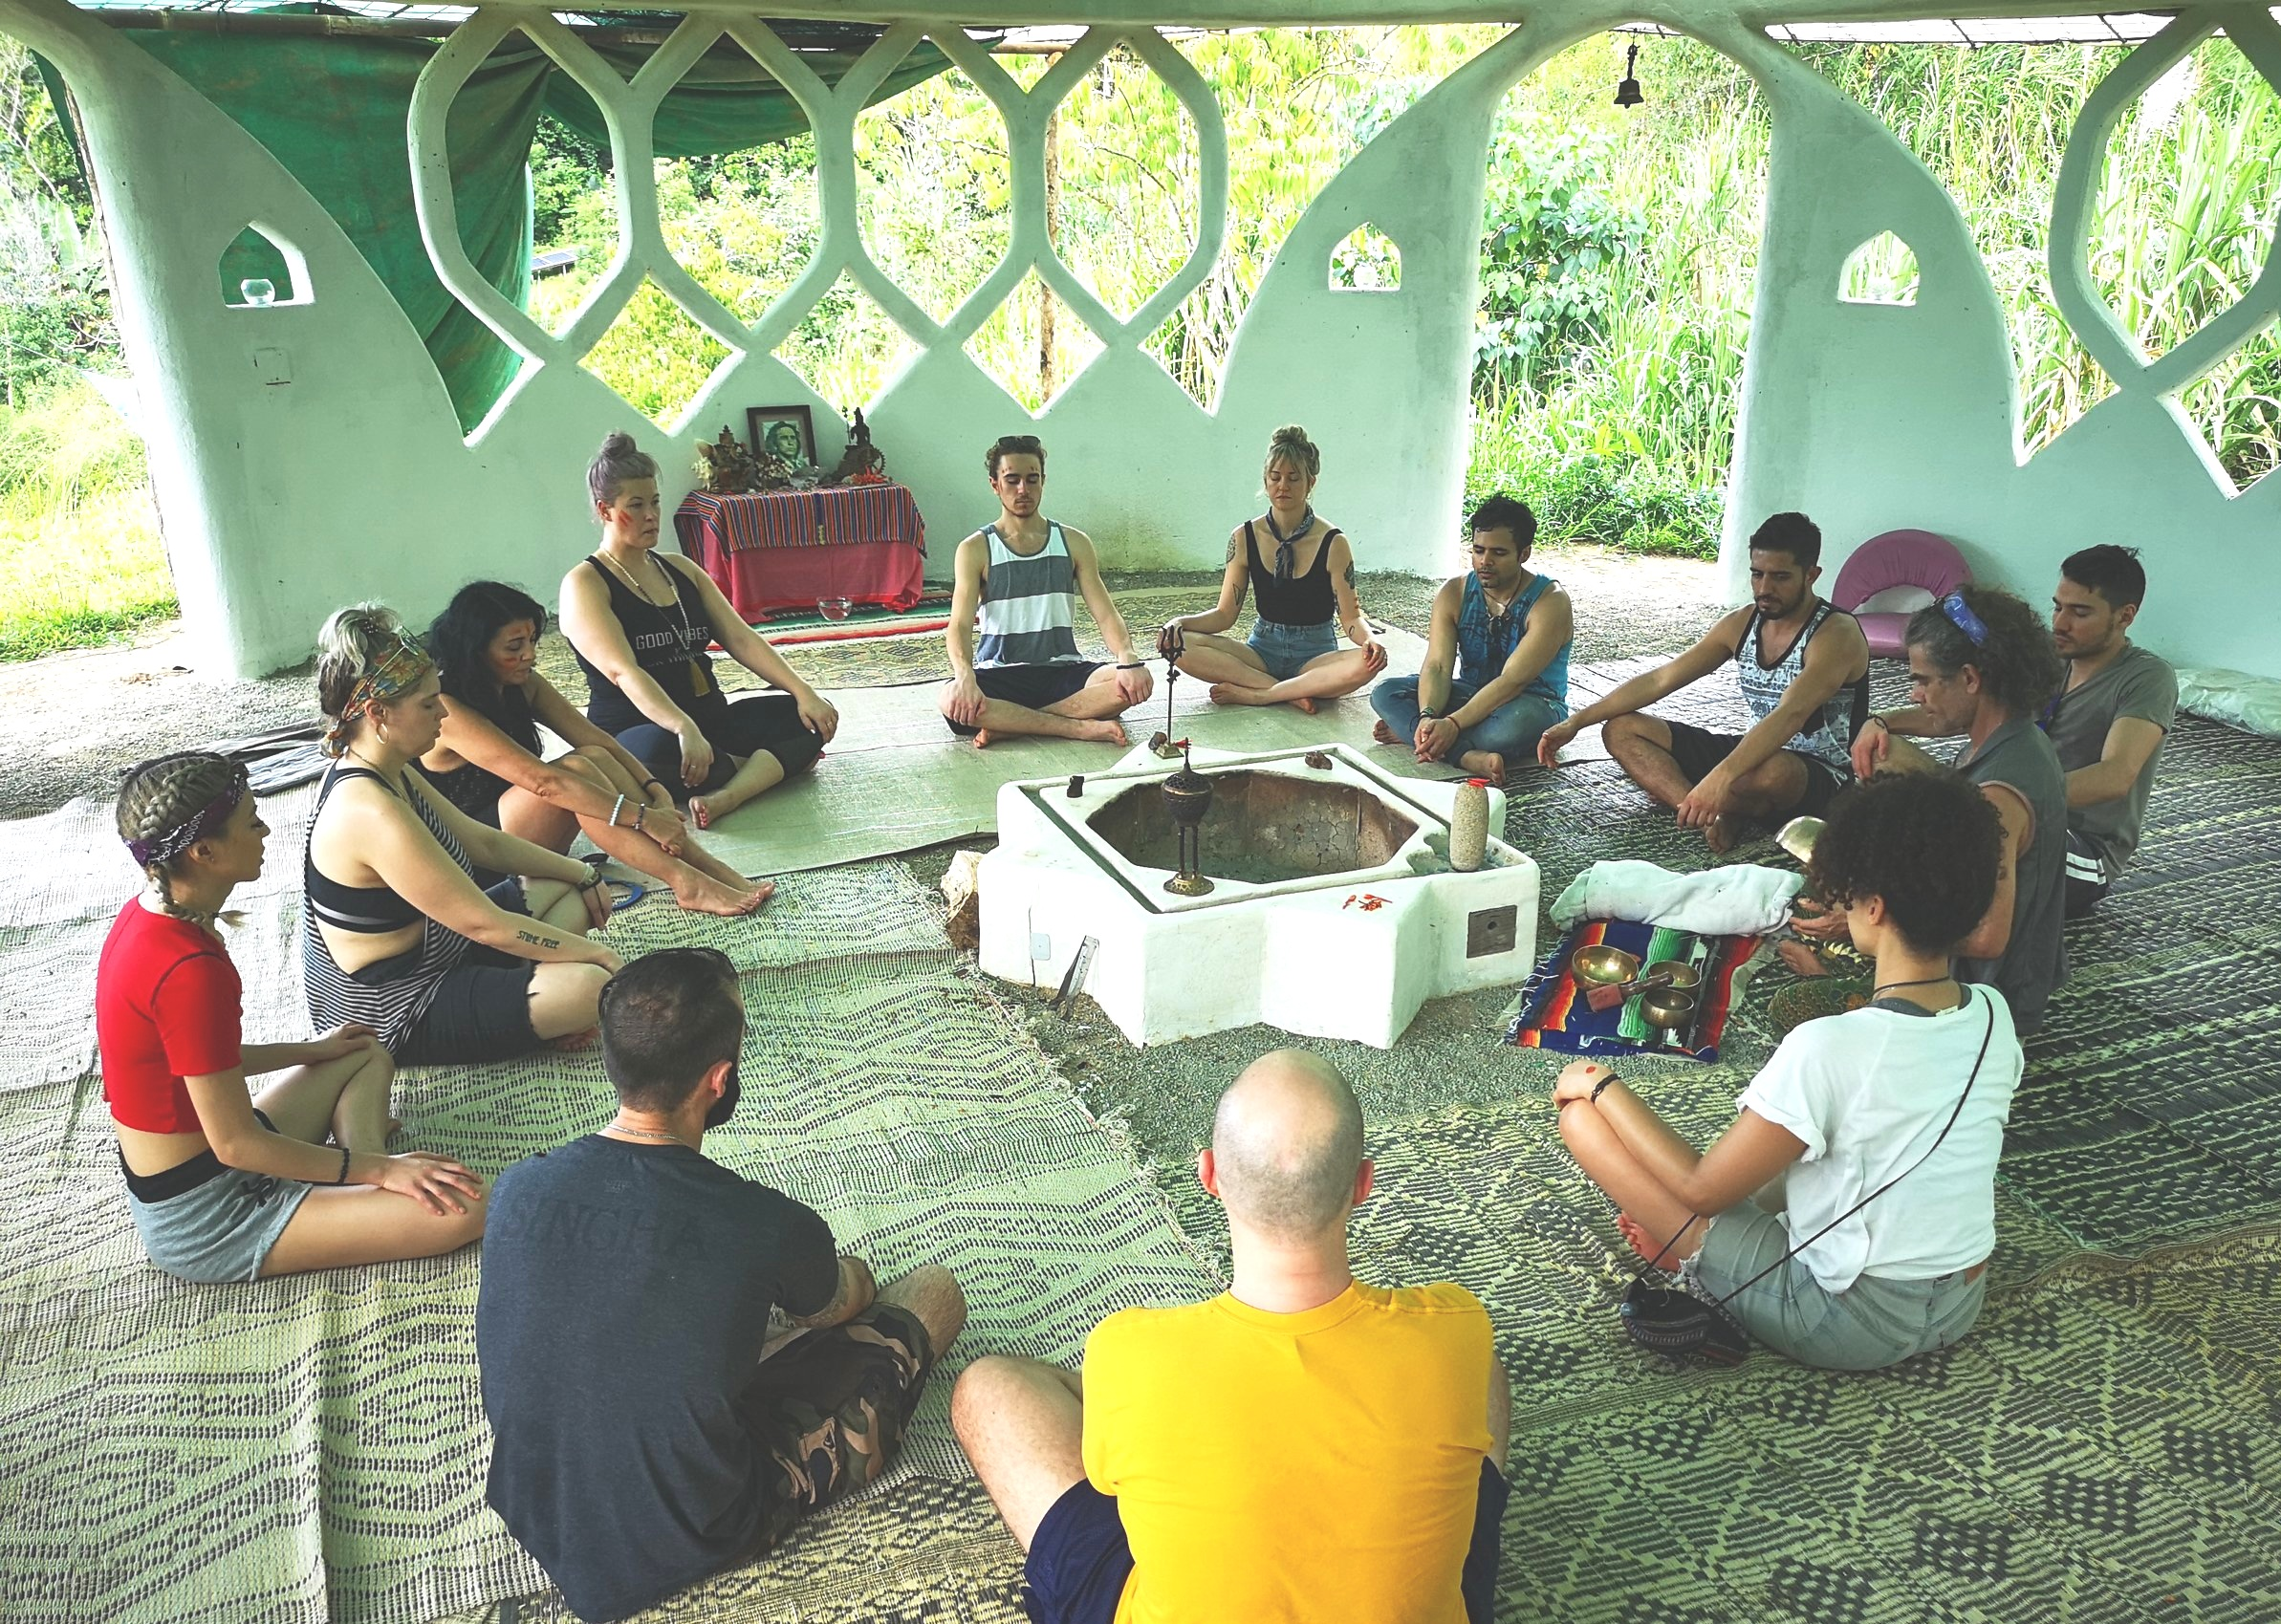 Meditation in the Babaji Fire Temple